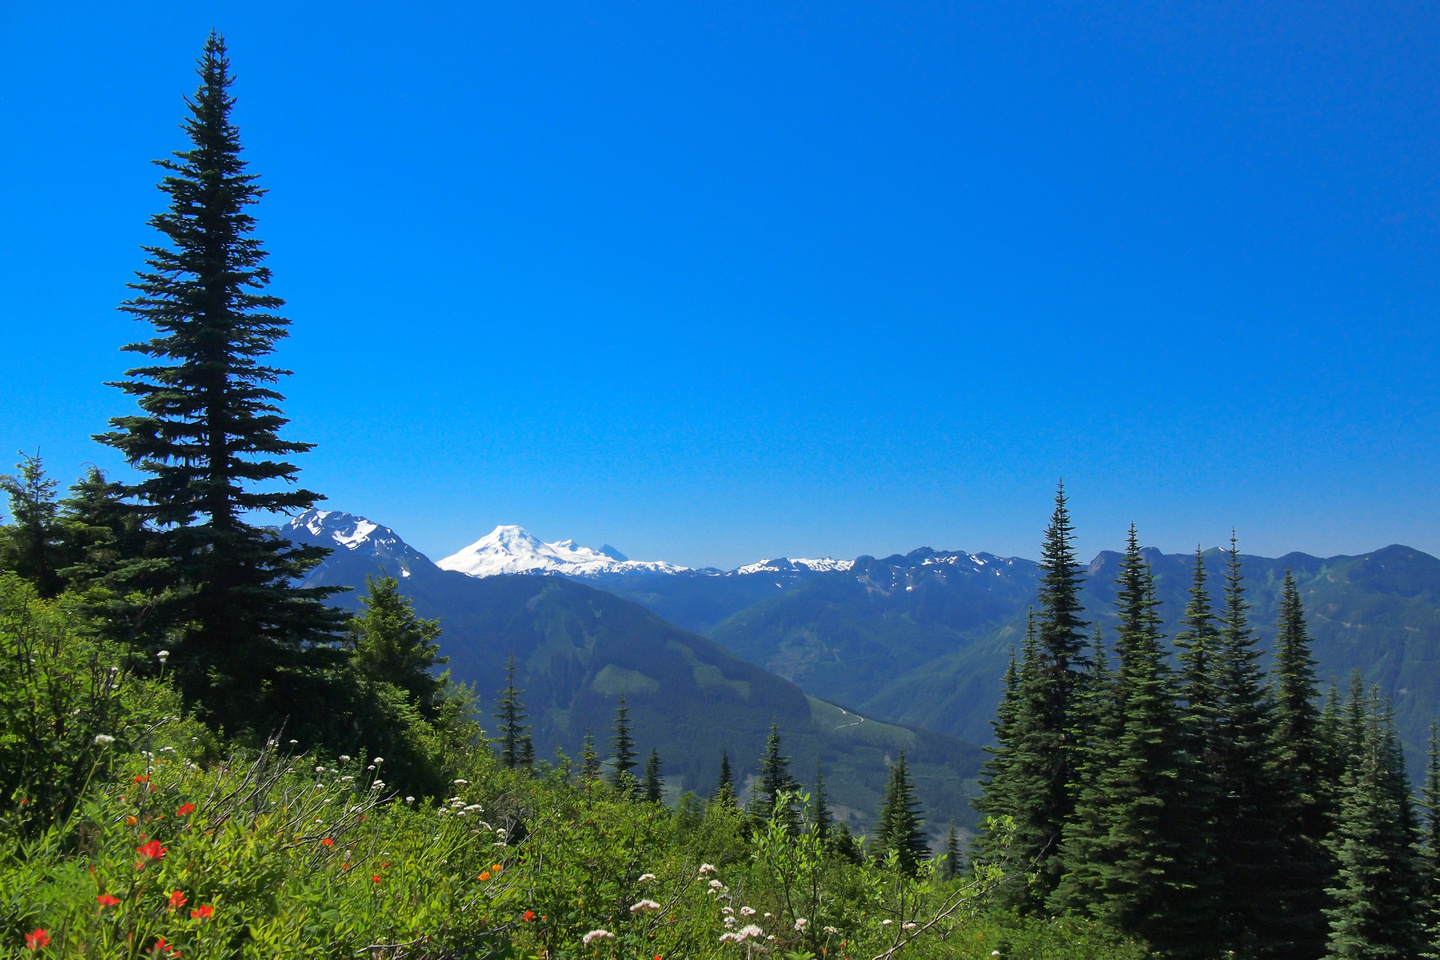 Mount Baker with wild flowers - never get tired of this scenery!